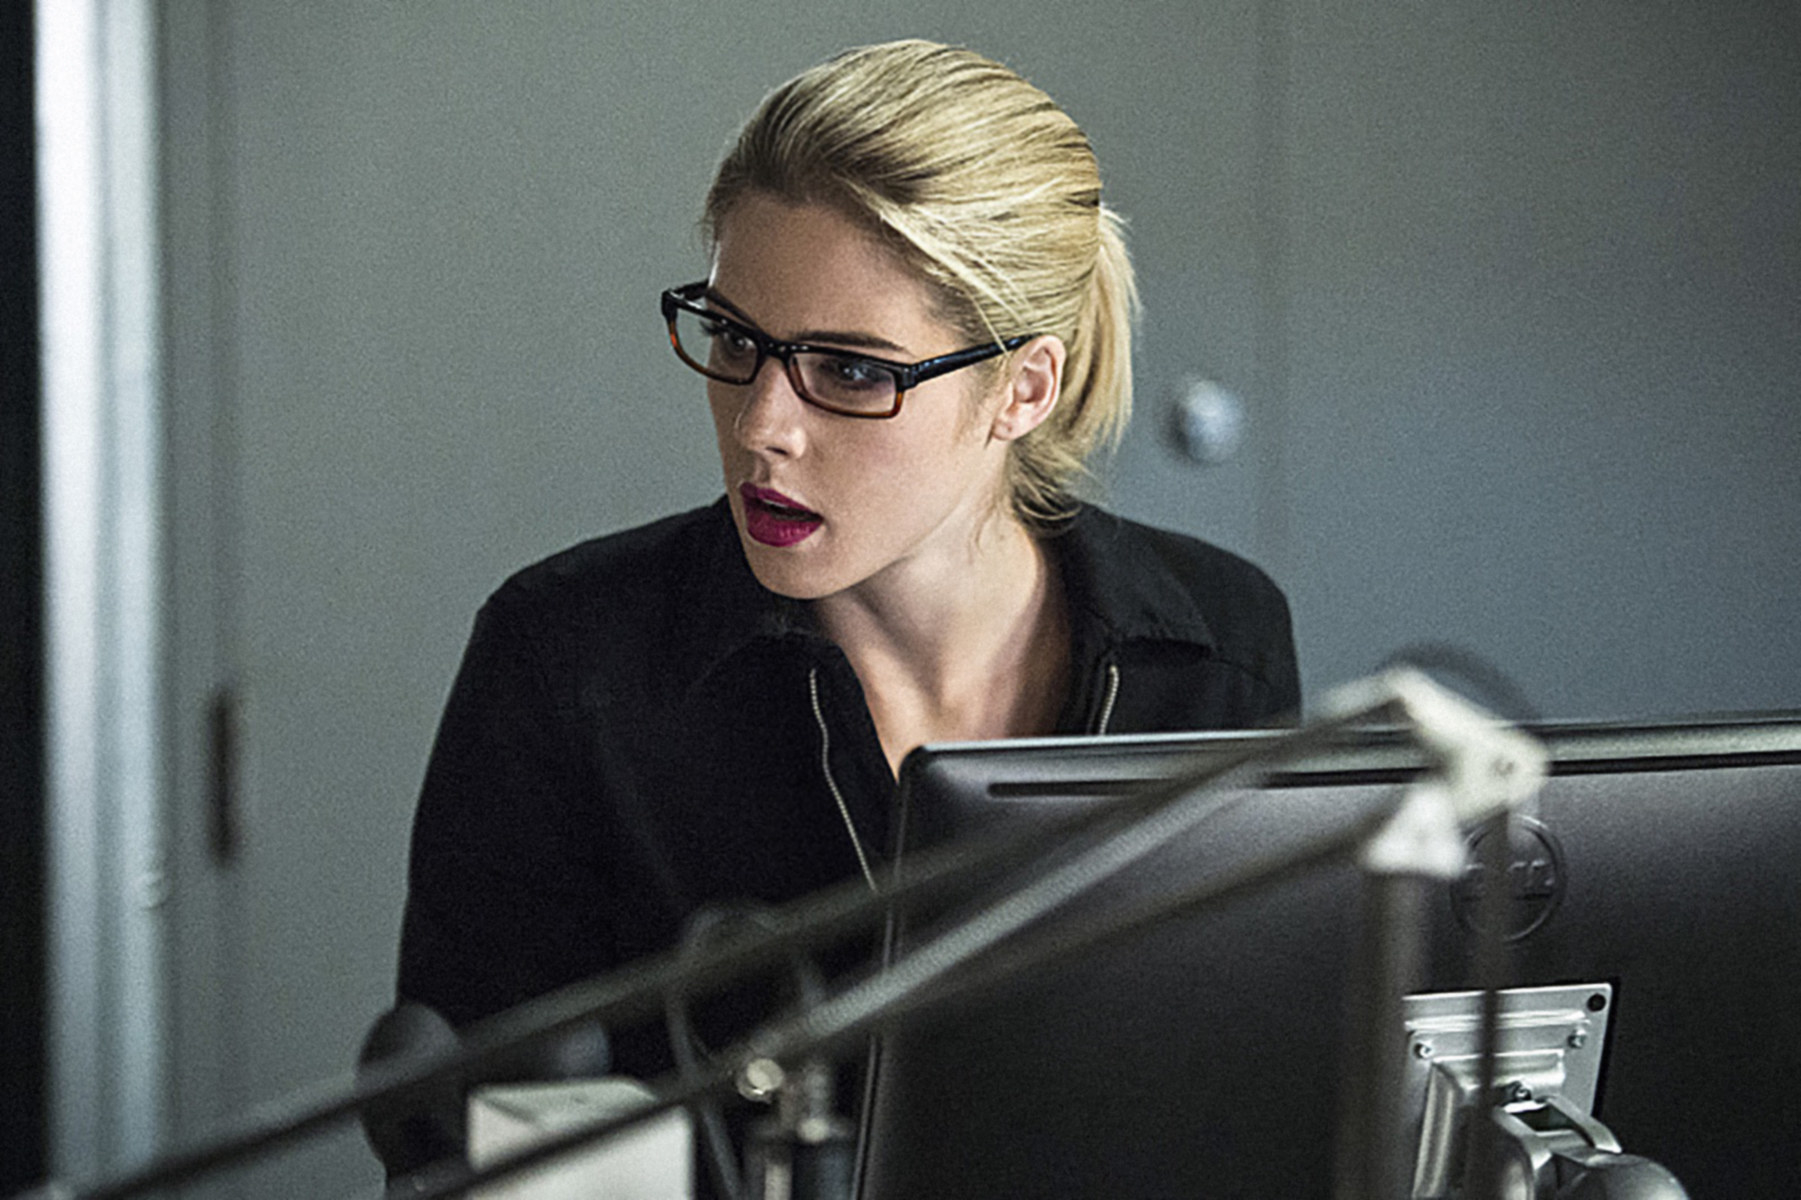 Felicity sitting at a computer